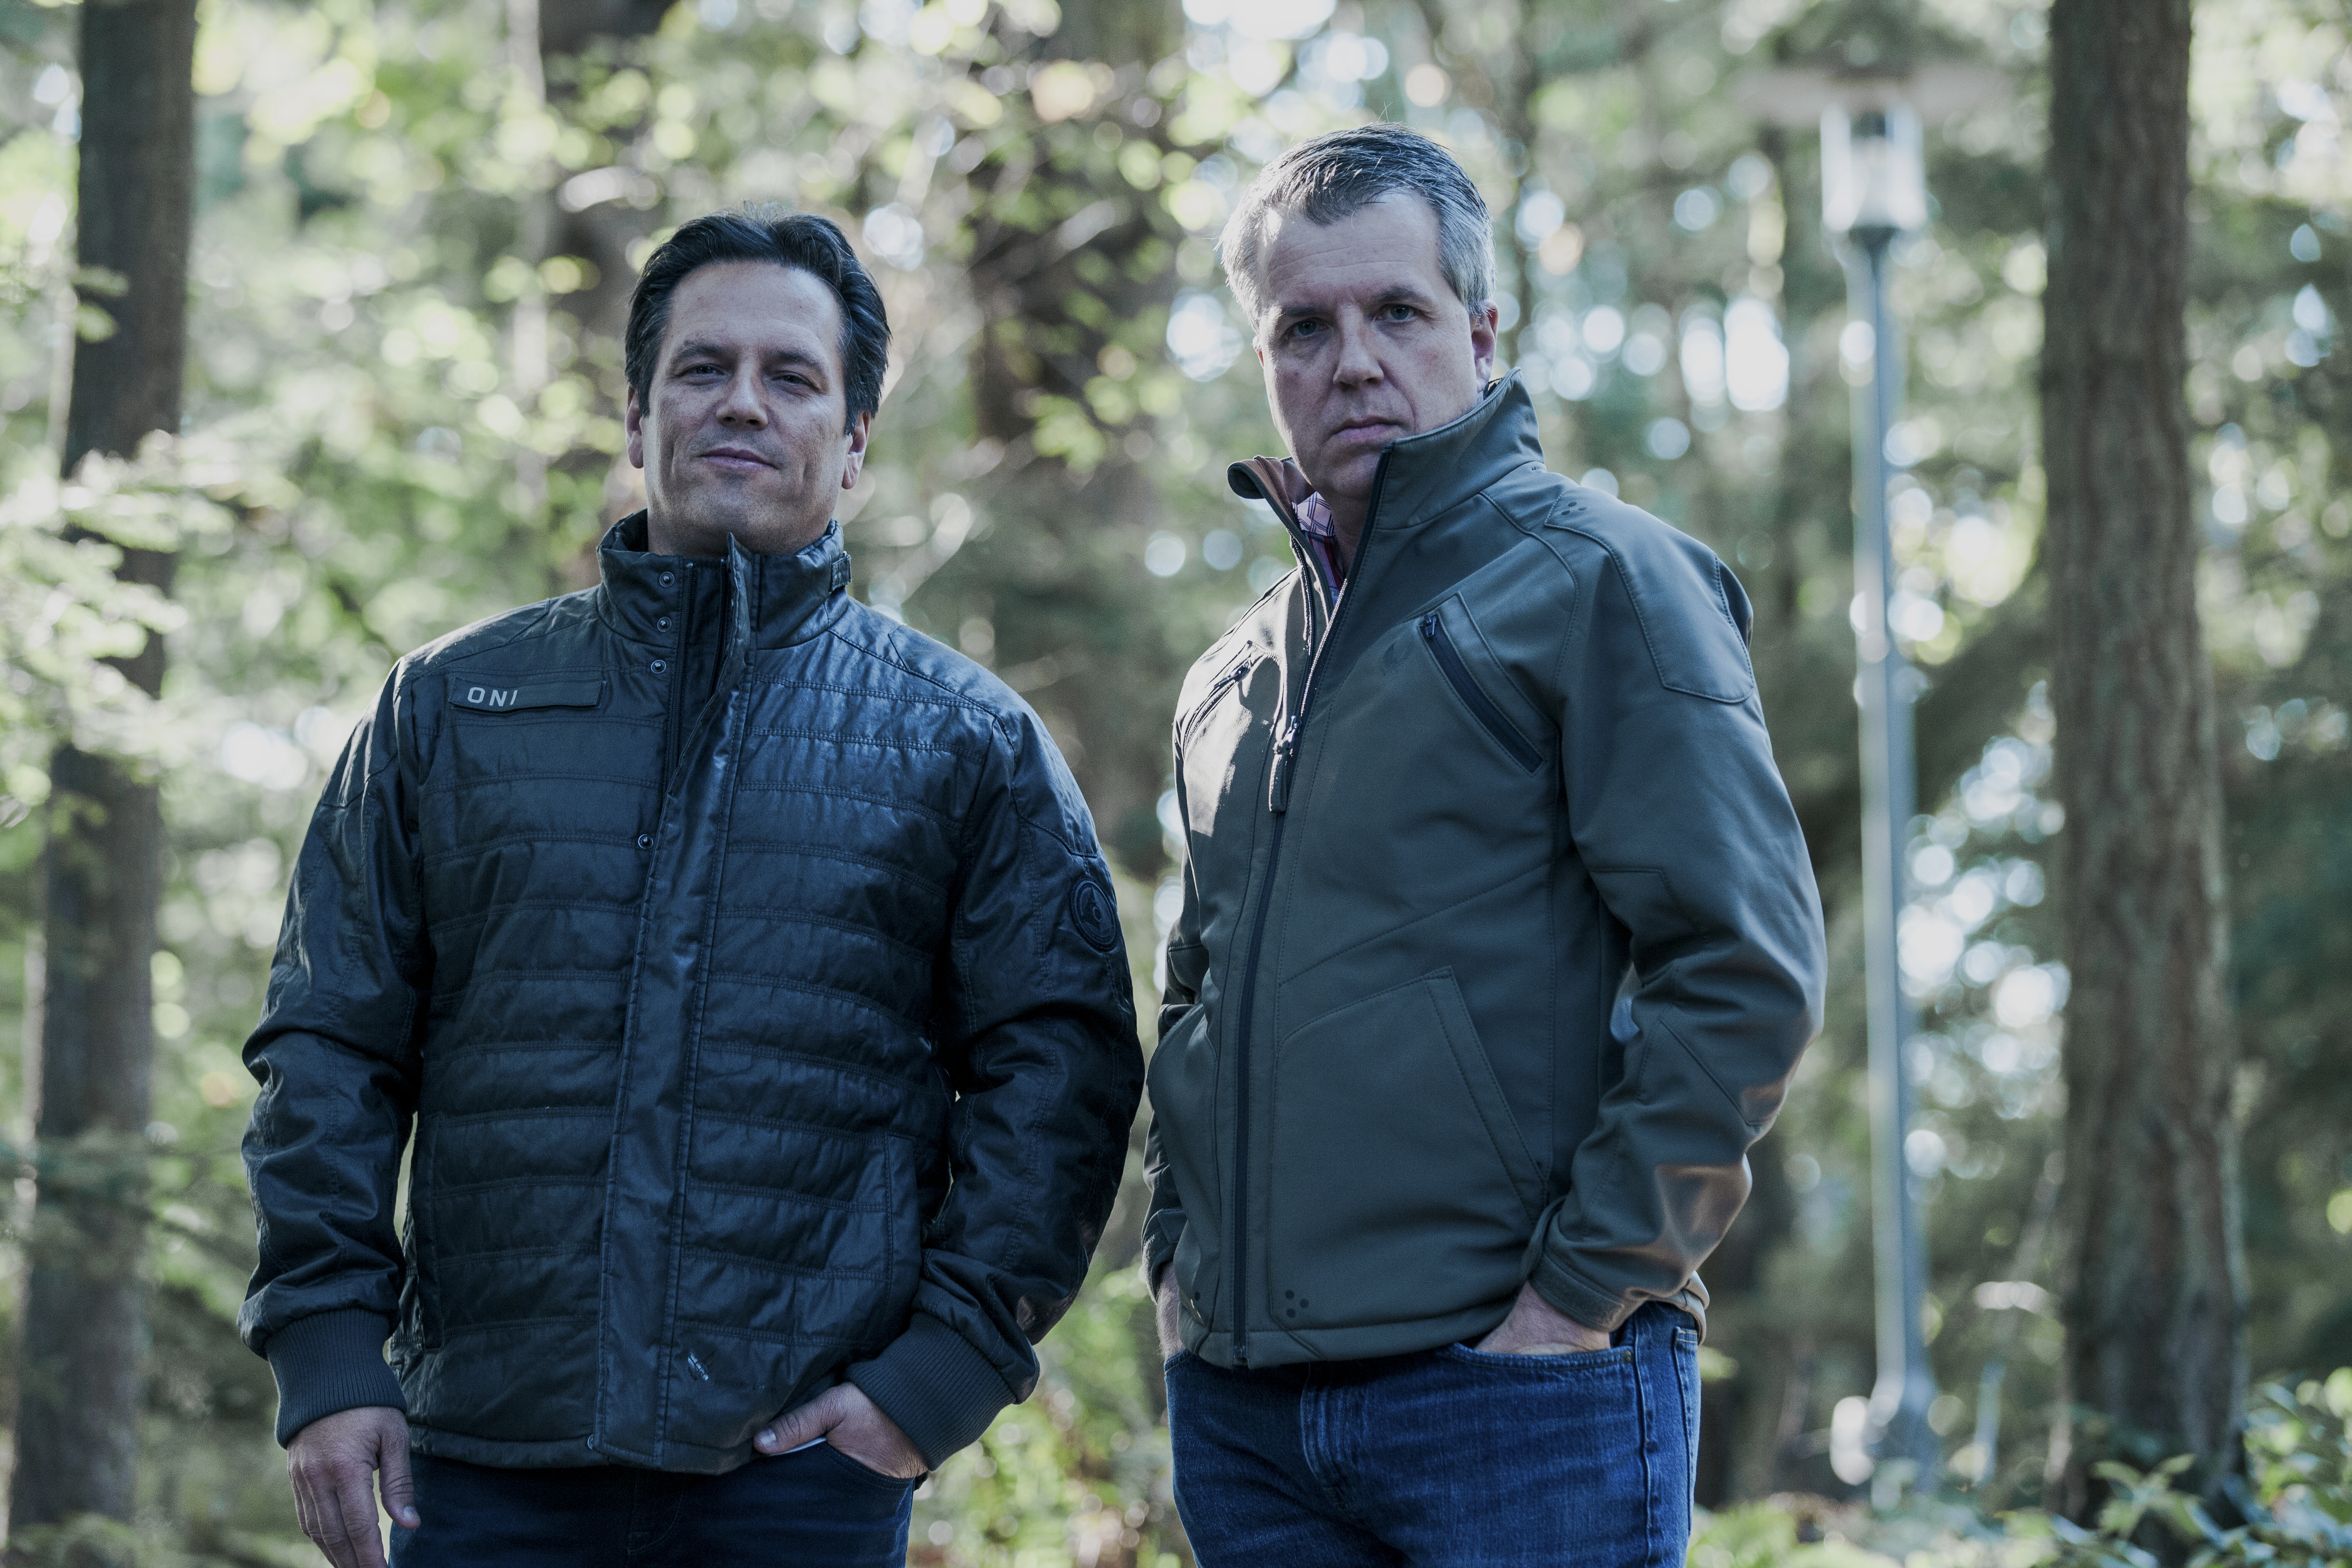 Phil Spencer and Major Nelson in Musterbrand